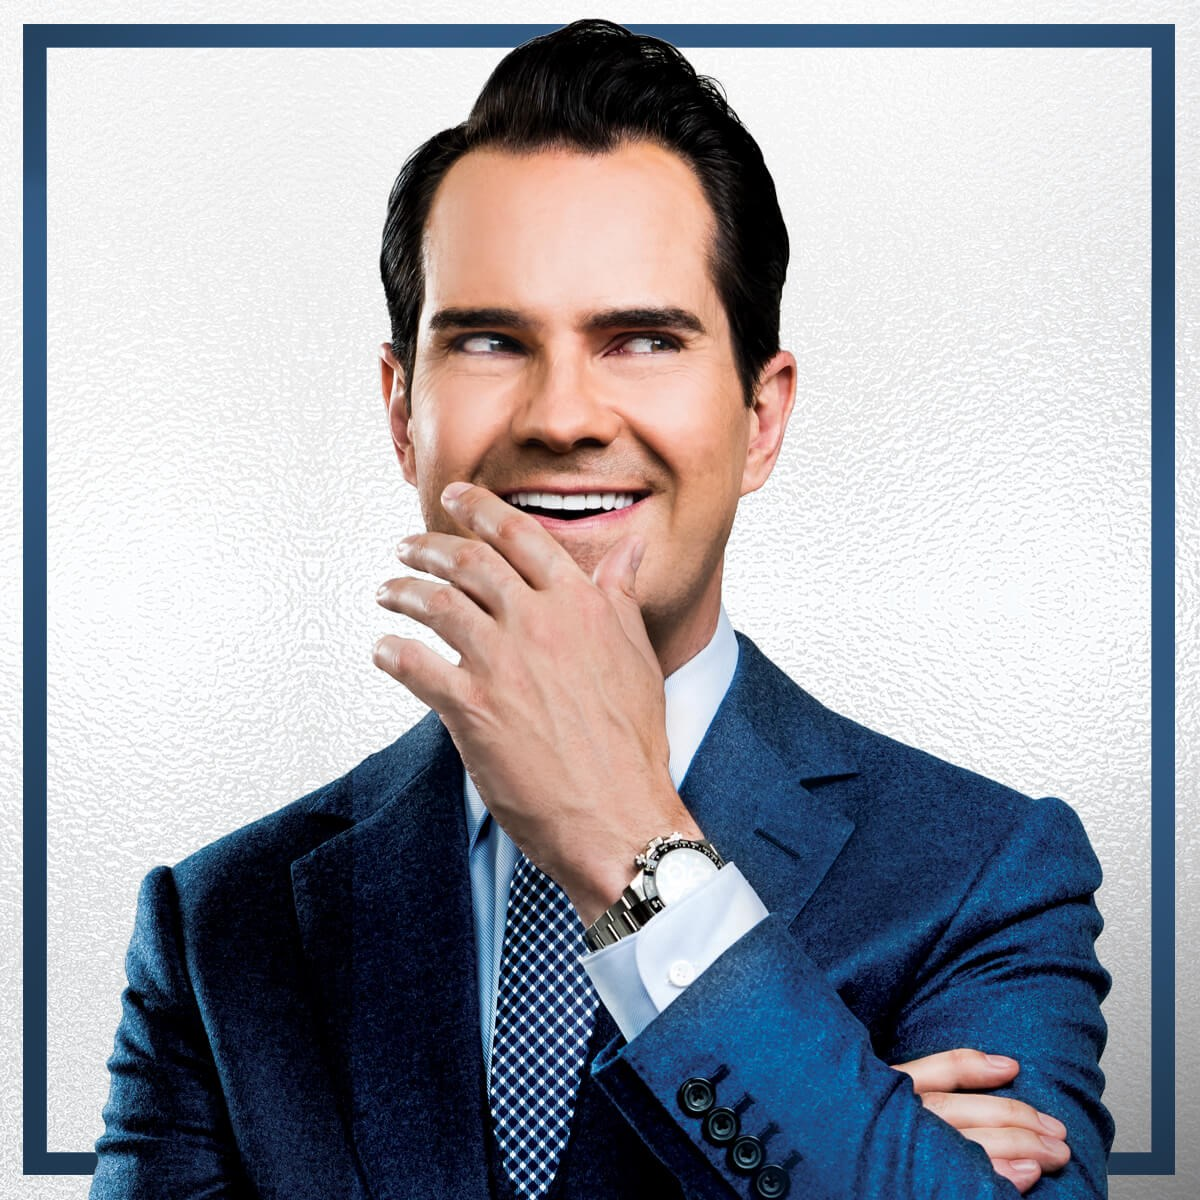 Jimmy Carr to bring new tour show to Dudley